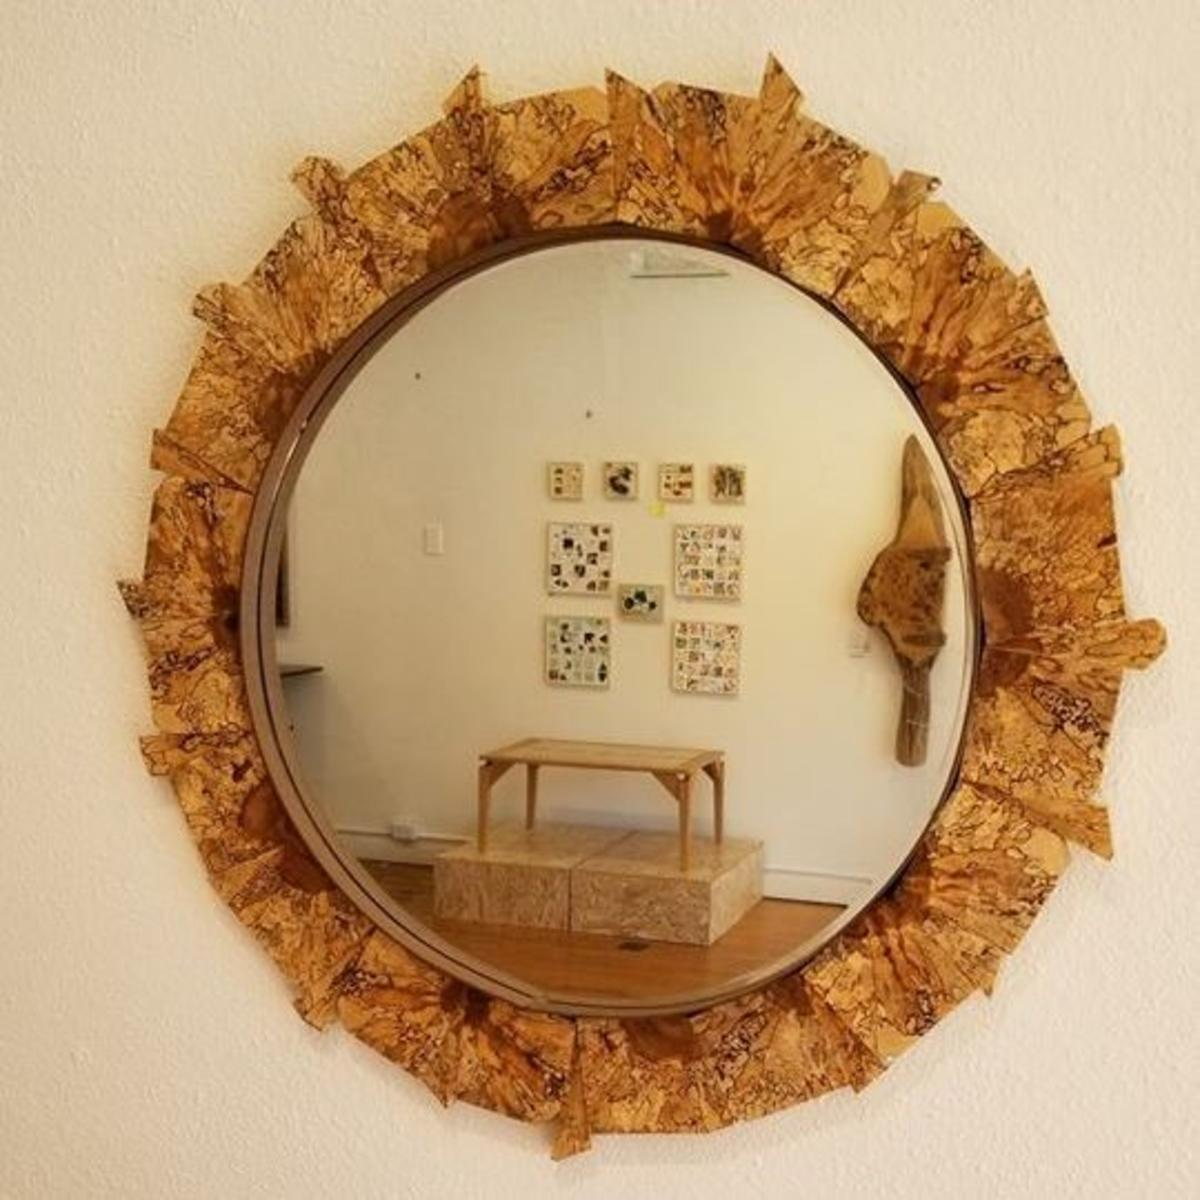 A mirror created by Gallery Q artist, Graham Coulson.